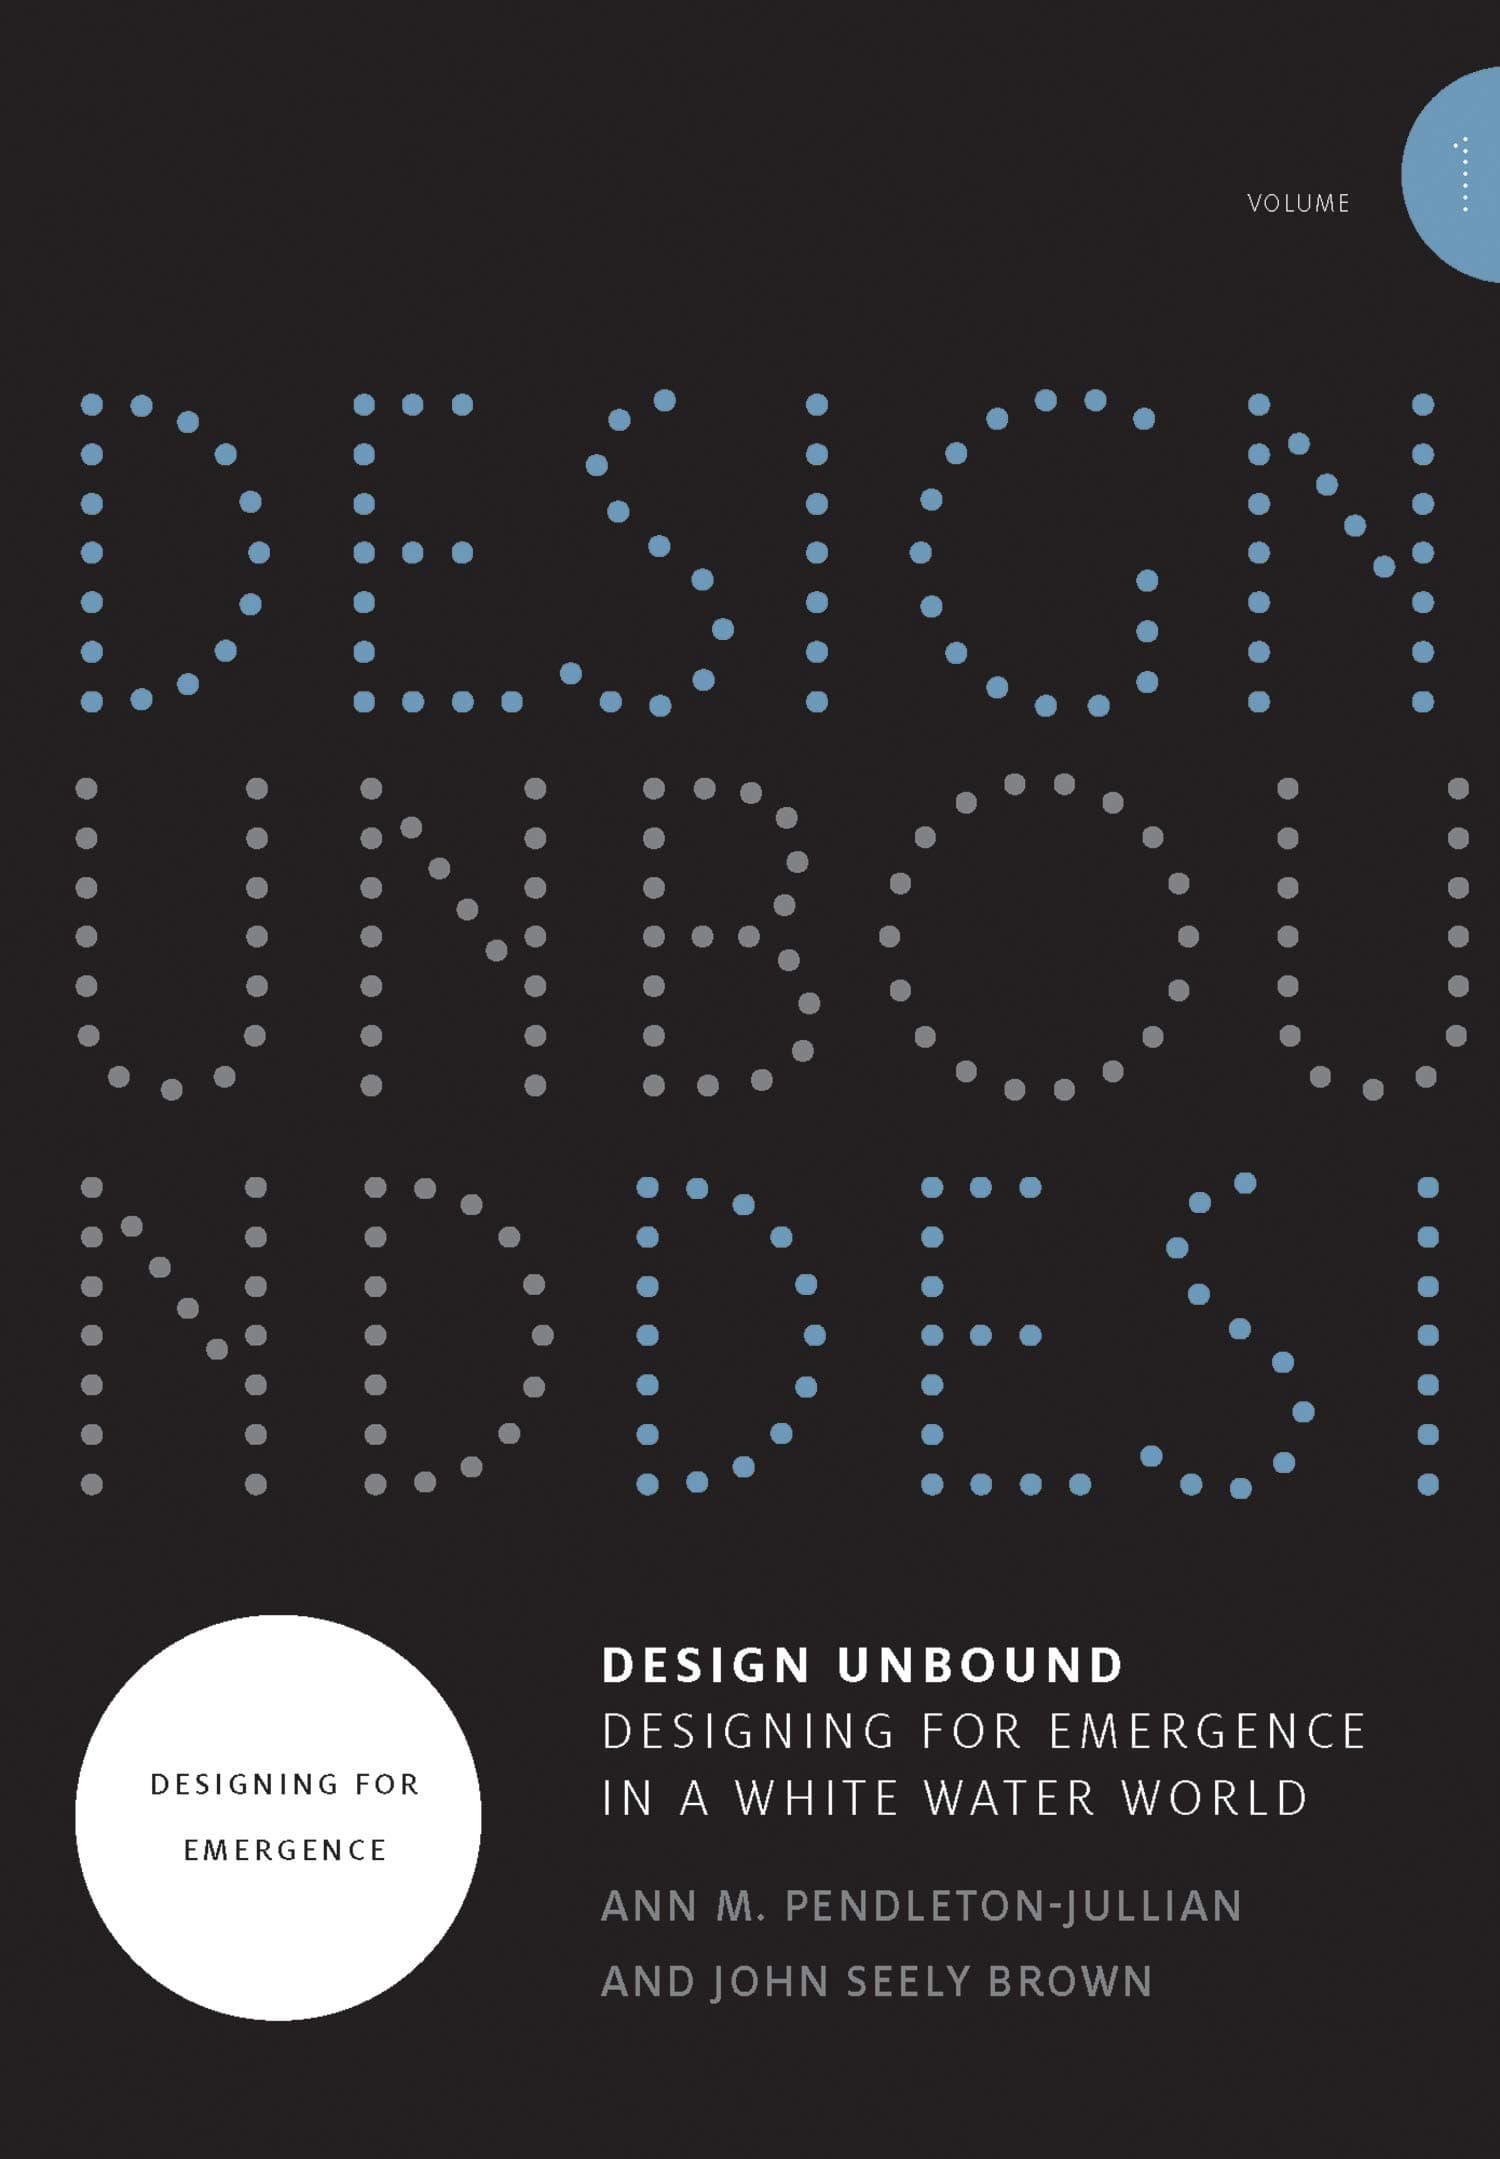 The cover of Design Unbound